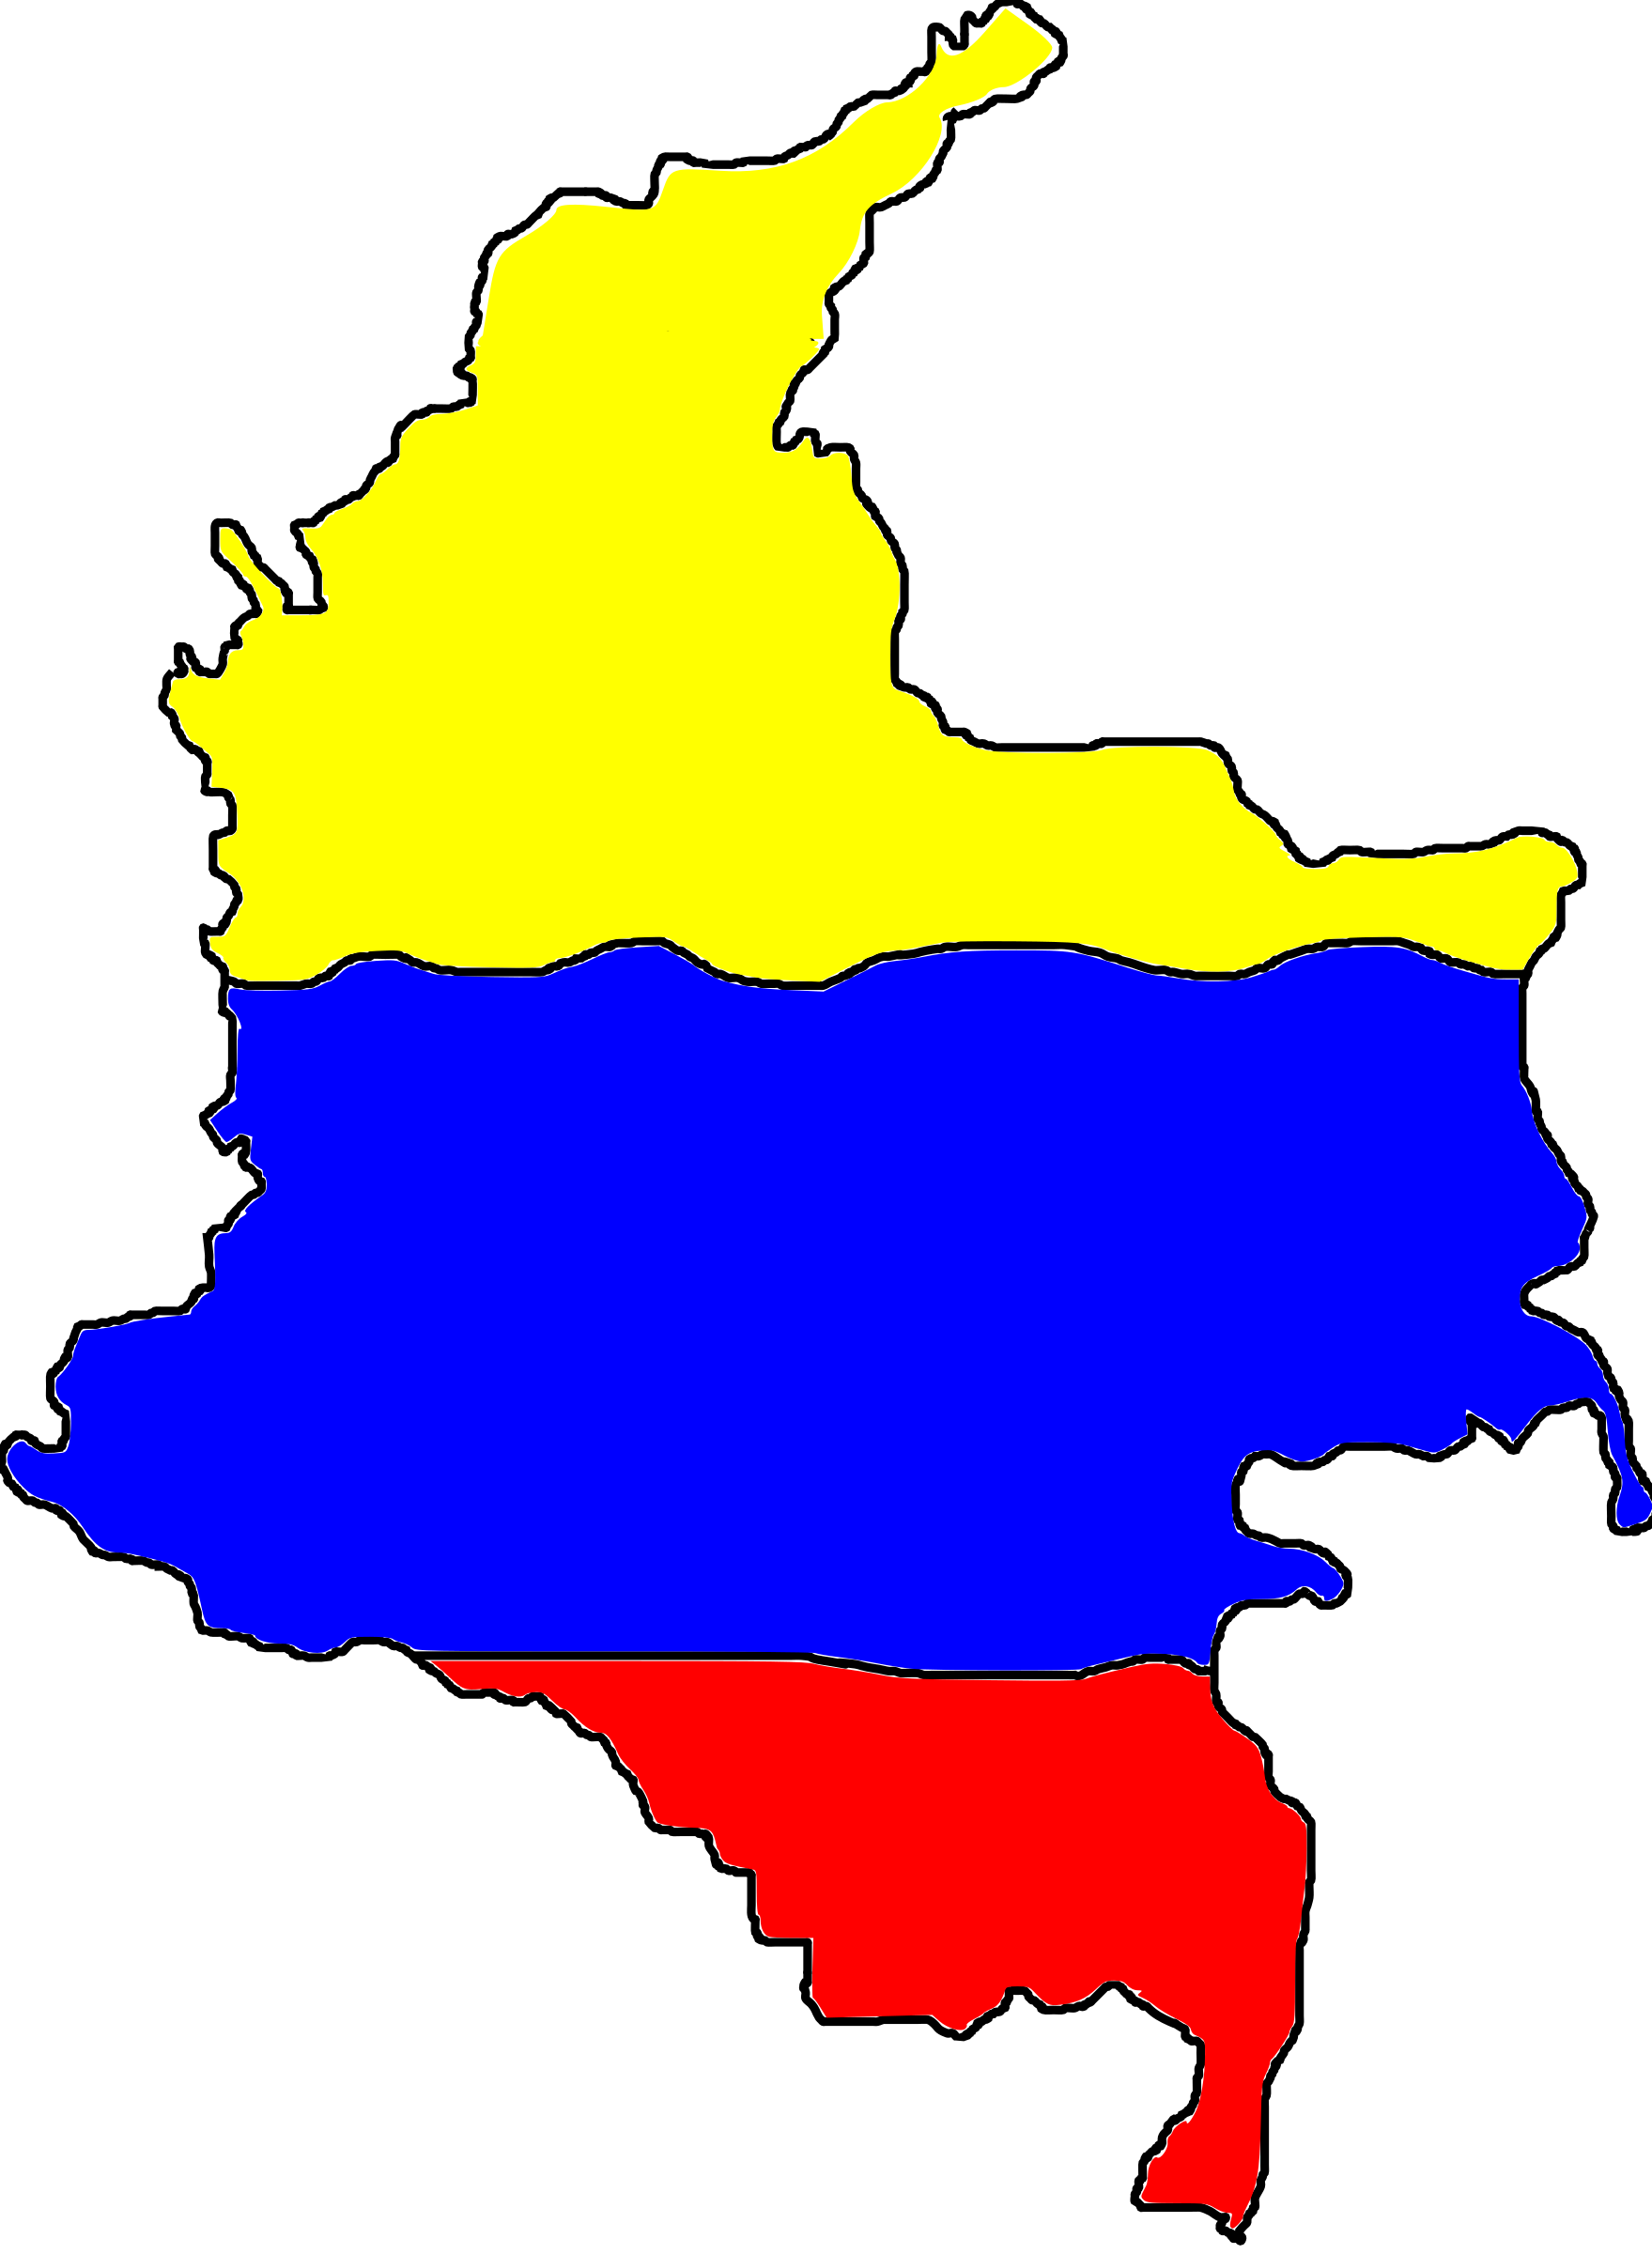 mapa-colombia by abcxd97